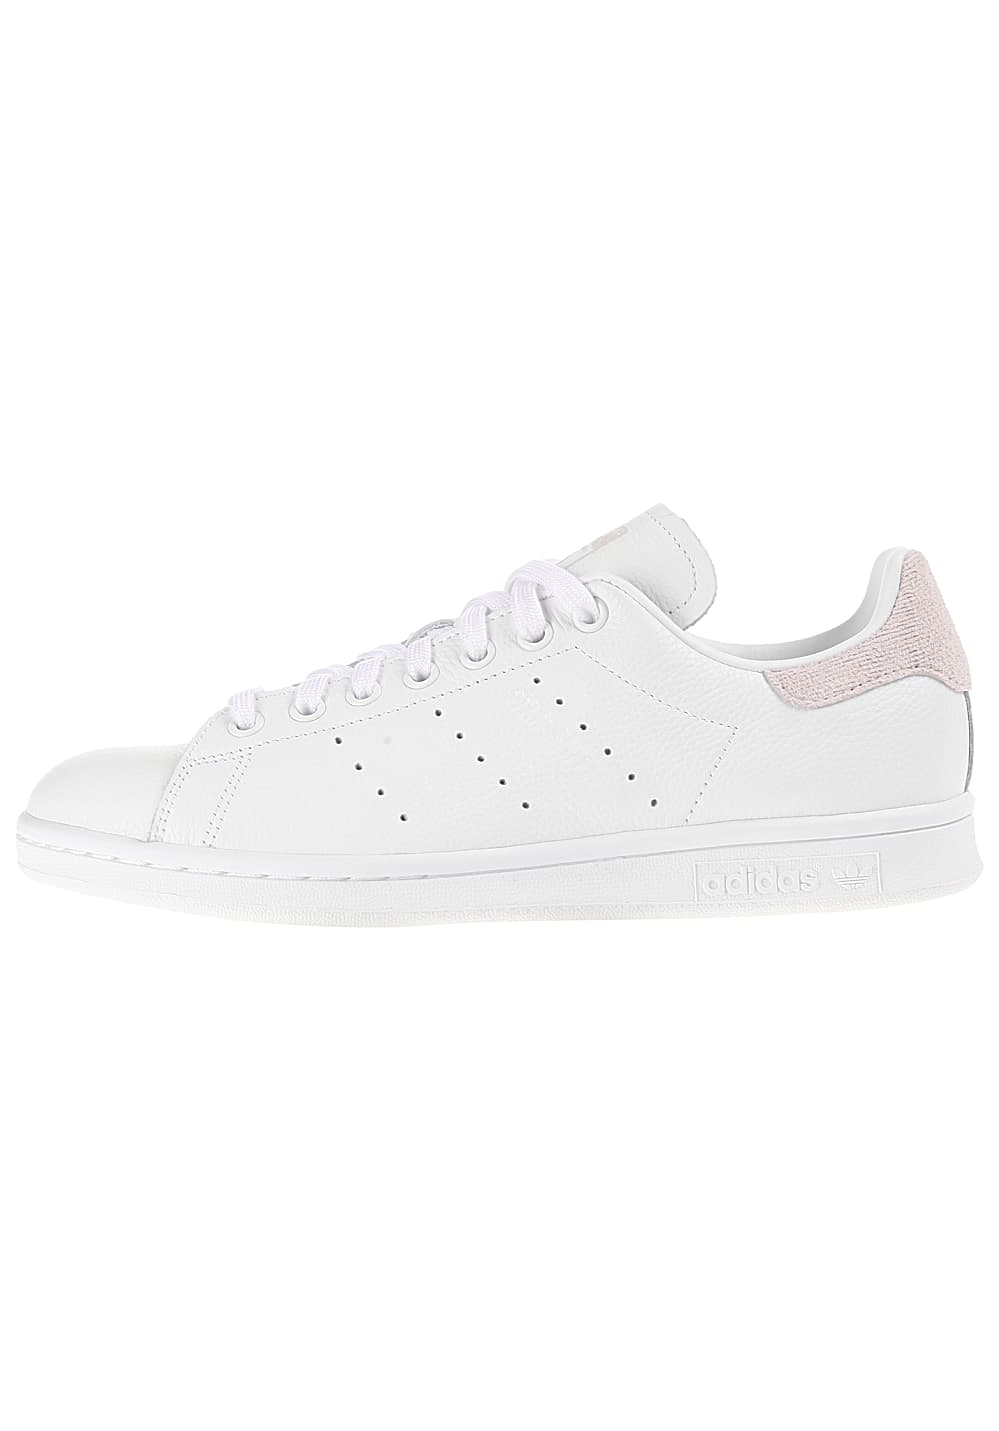 ADIDAS ORIGINALS Stan Smith Sneakers for Women White